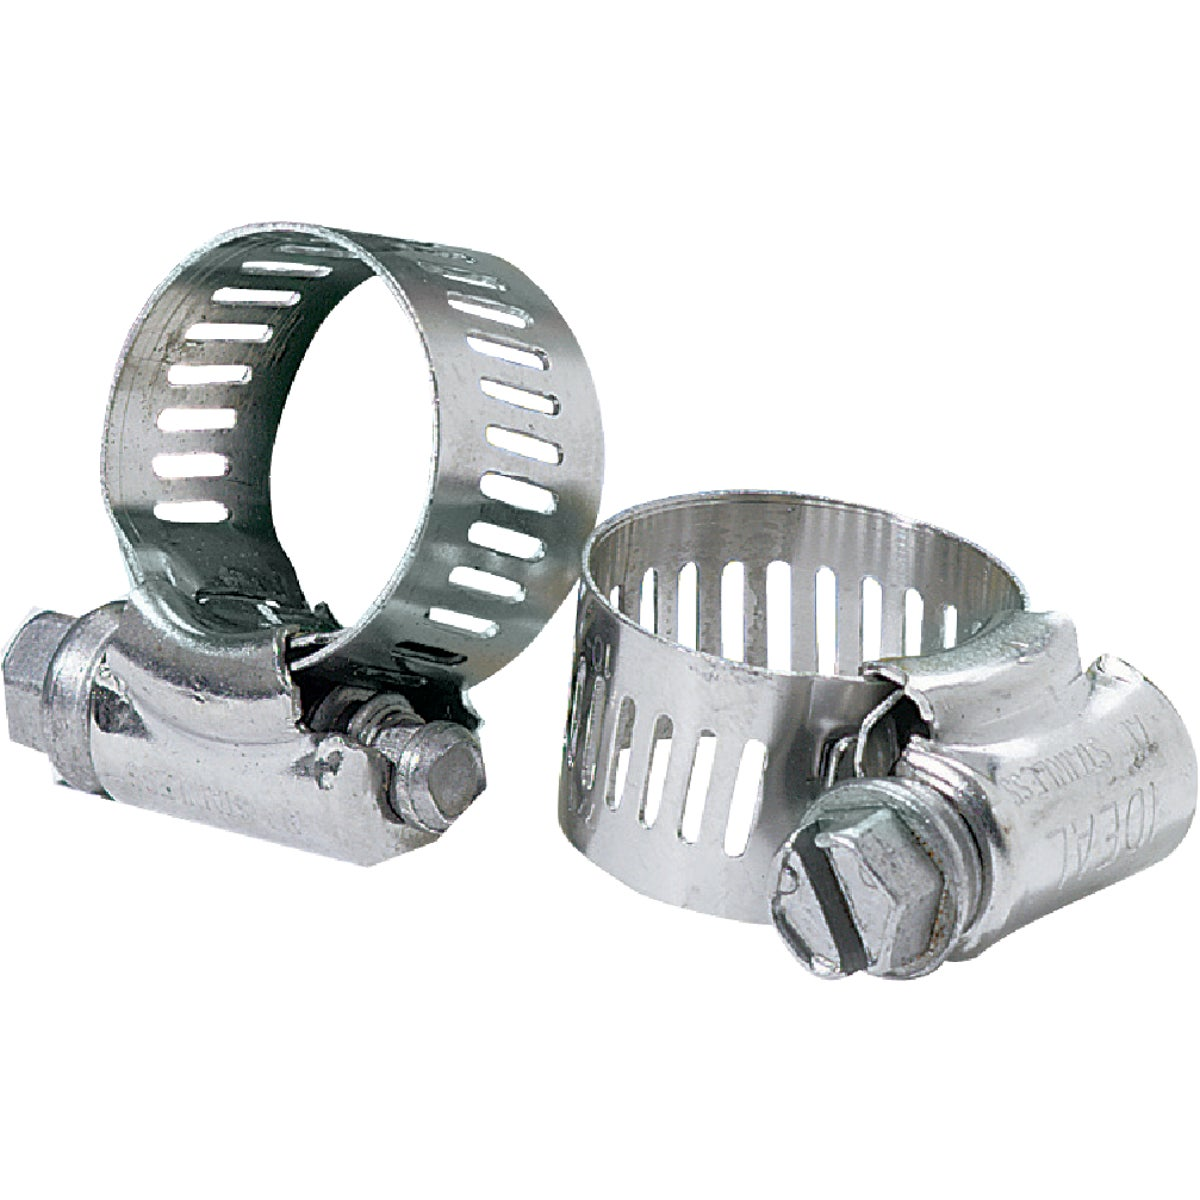 3/4-1-3/4 CLAMP - 6720153 by Ideal Corp